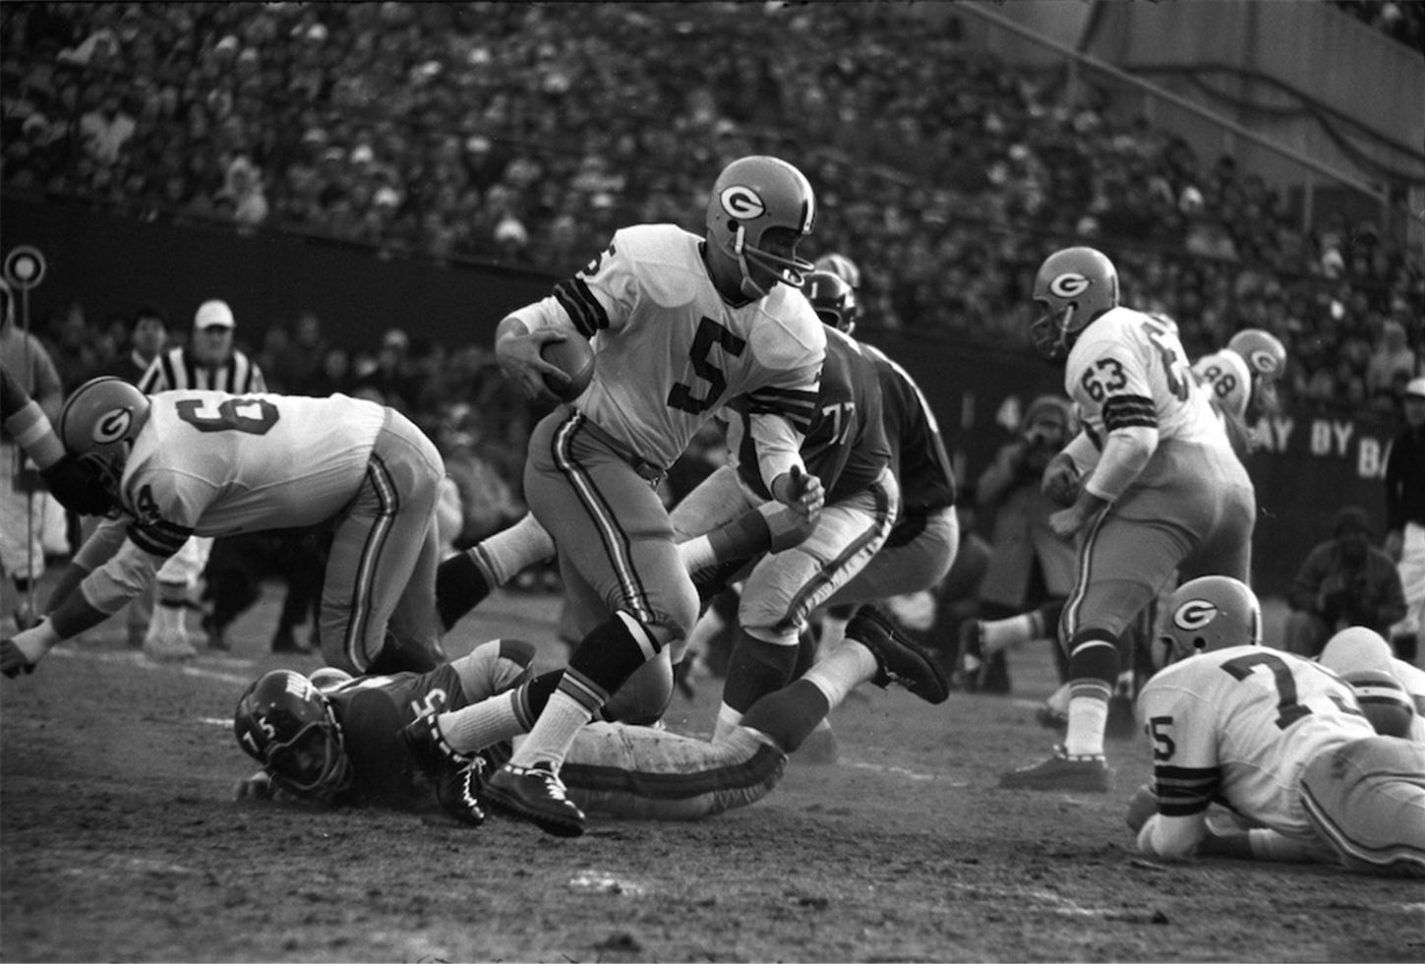 Green Bay Packers vs New York Giants, 1961, NFL Championship